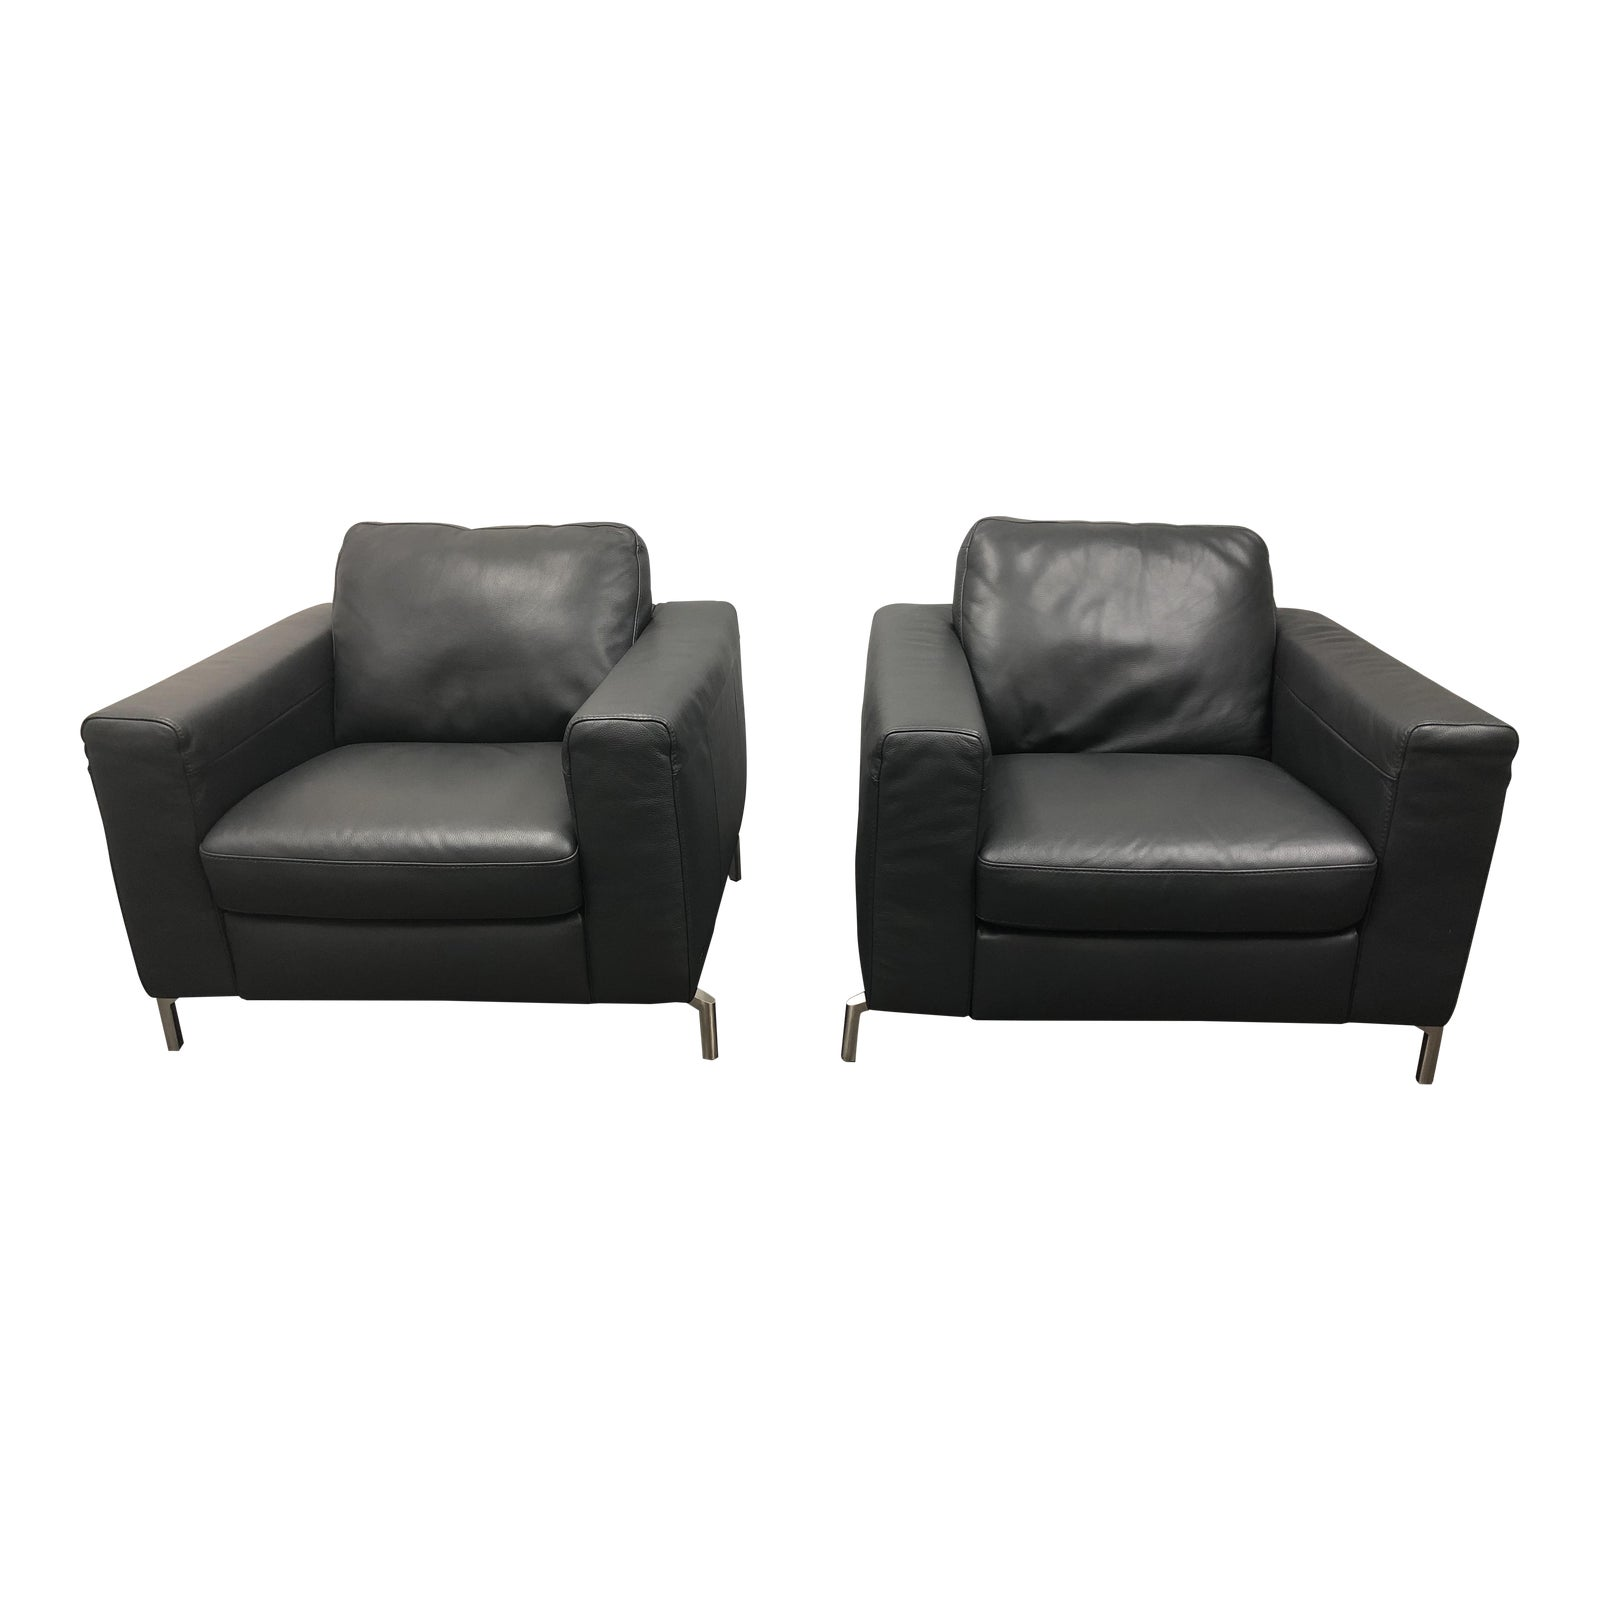 Natuzzi Sollievo B845 Leather Armchairs A Pair Chairish - Red-italian-leather-armchairs-from-natuzzi